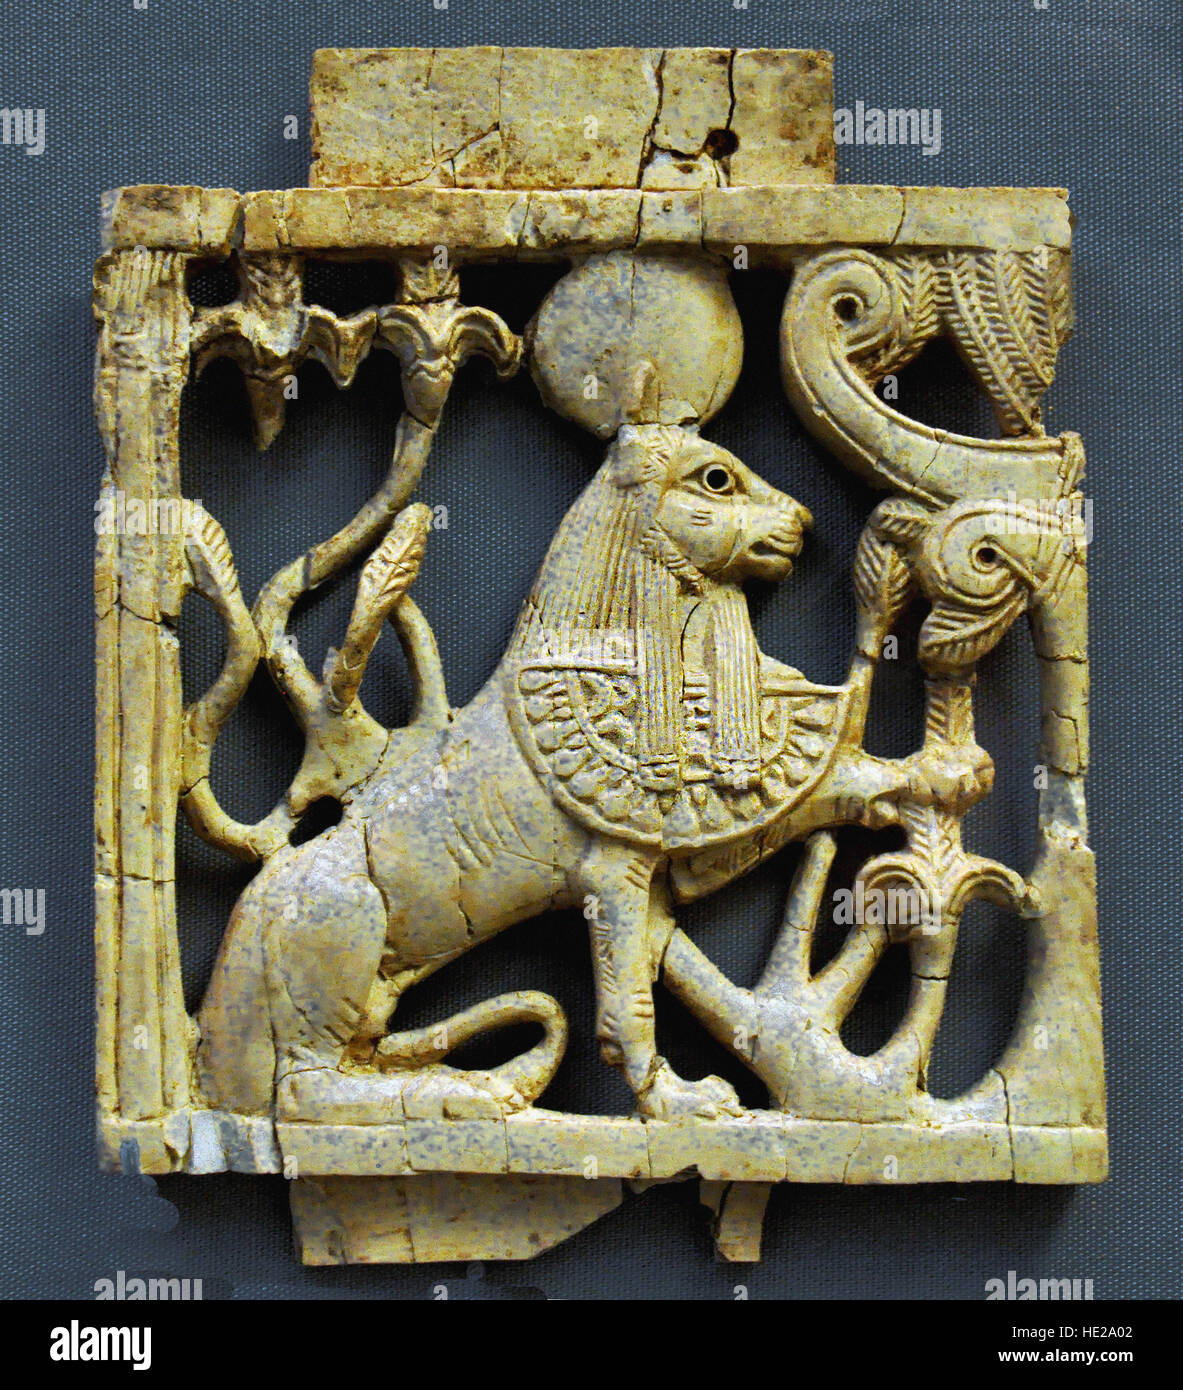 6007. Ivory plaque depicting a ram headed Sphinx. Nimrud, Mesopotamia, 9-8th. C. BC. - Stock Image